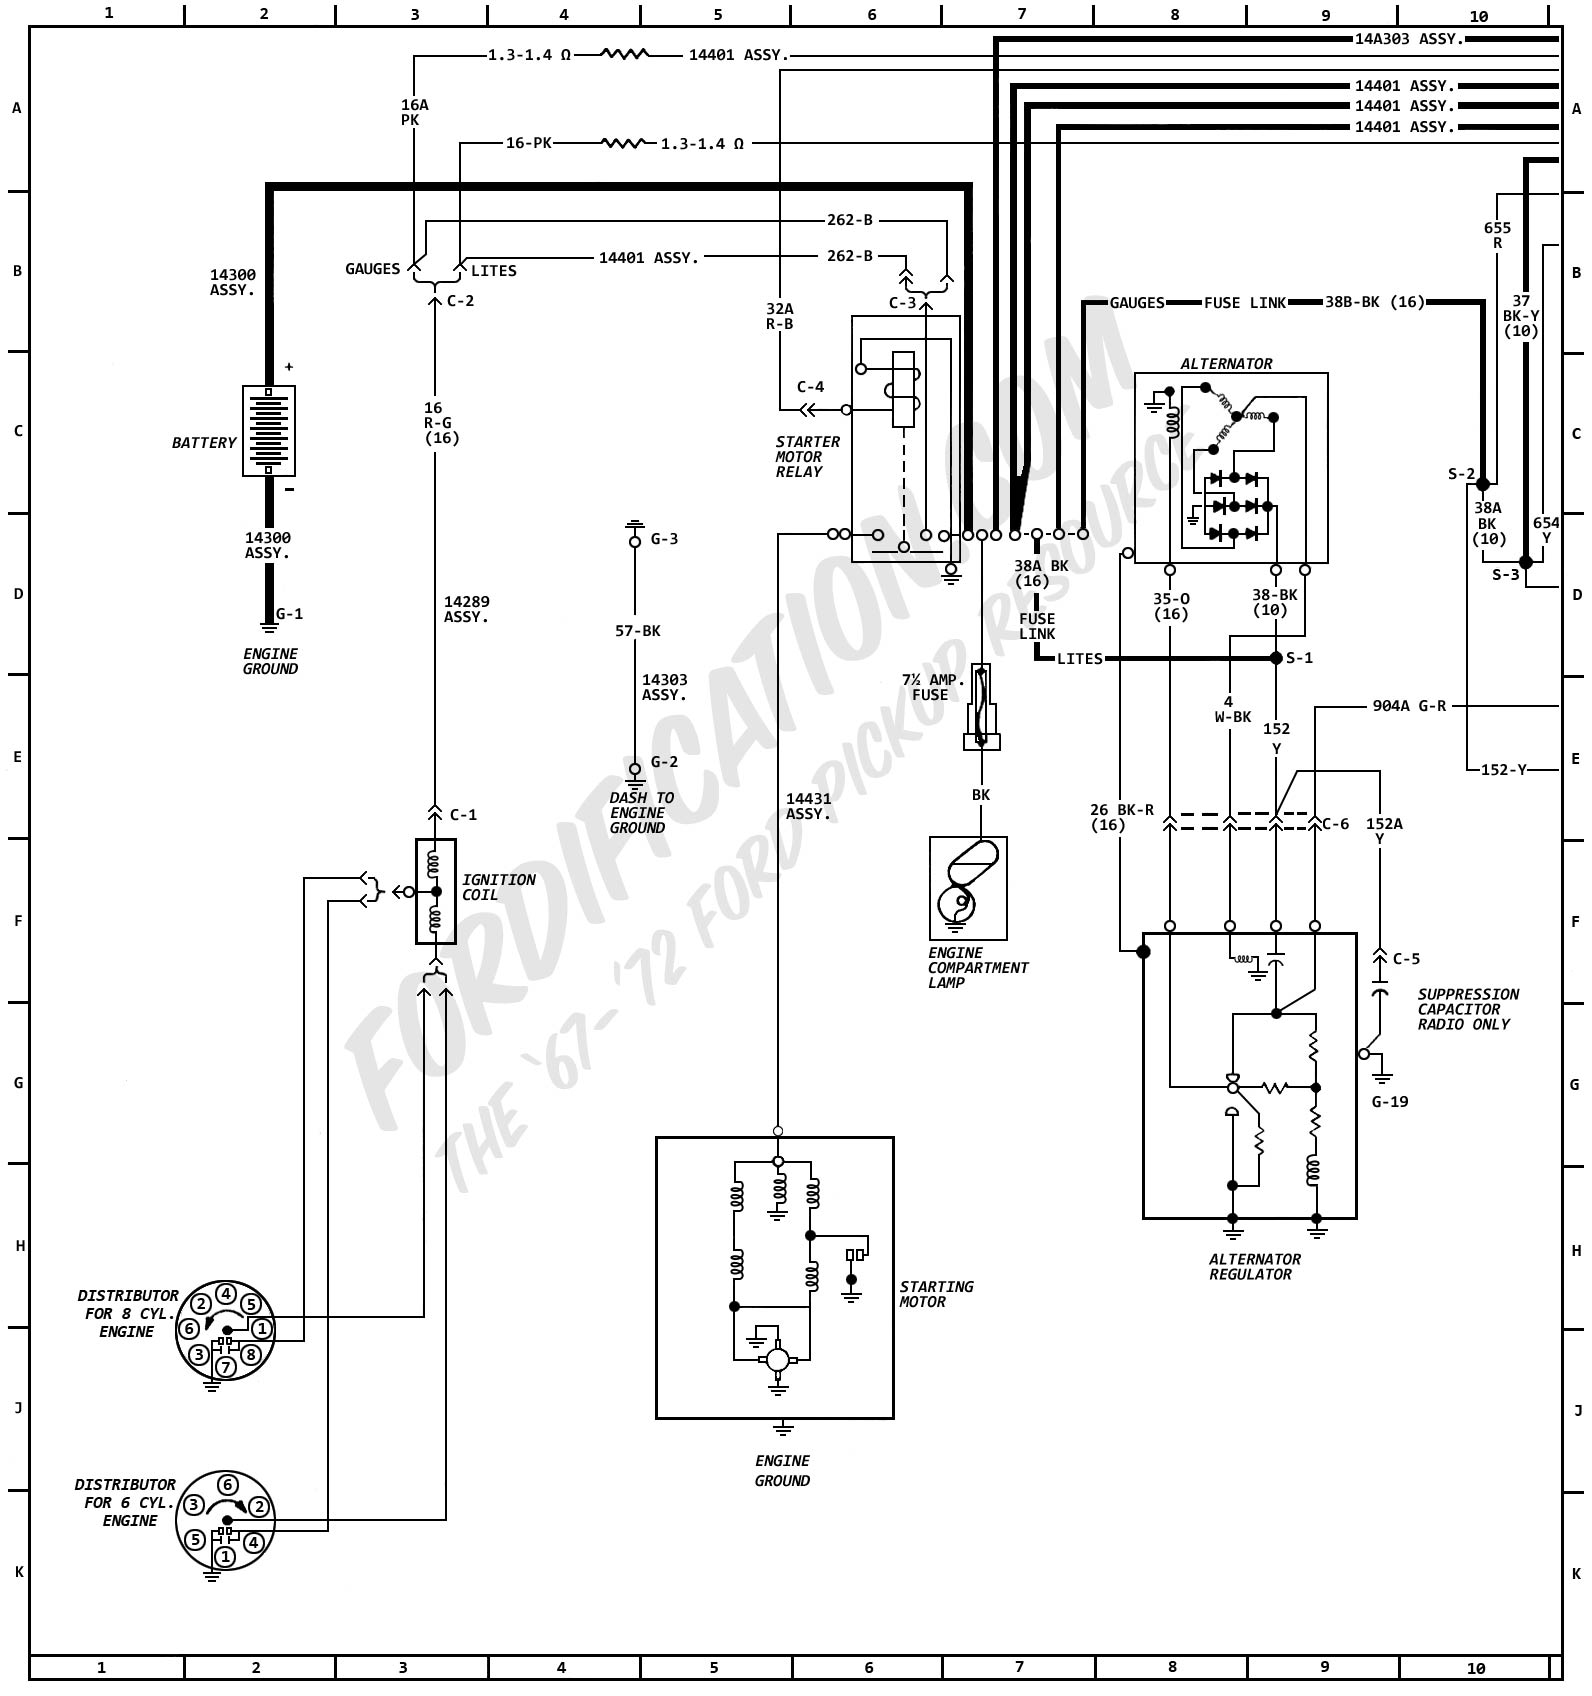 1972MasterWiring_01 1972 ford truck wiring diagrams fordification com F100 Wiring Diagram at gsmx.co